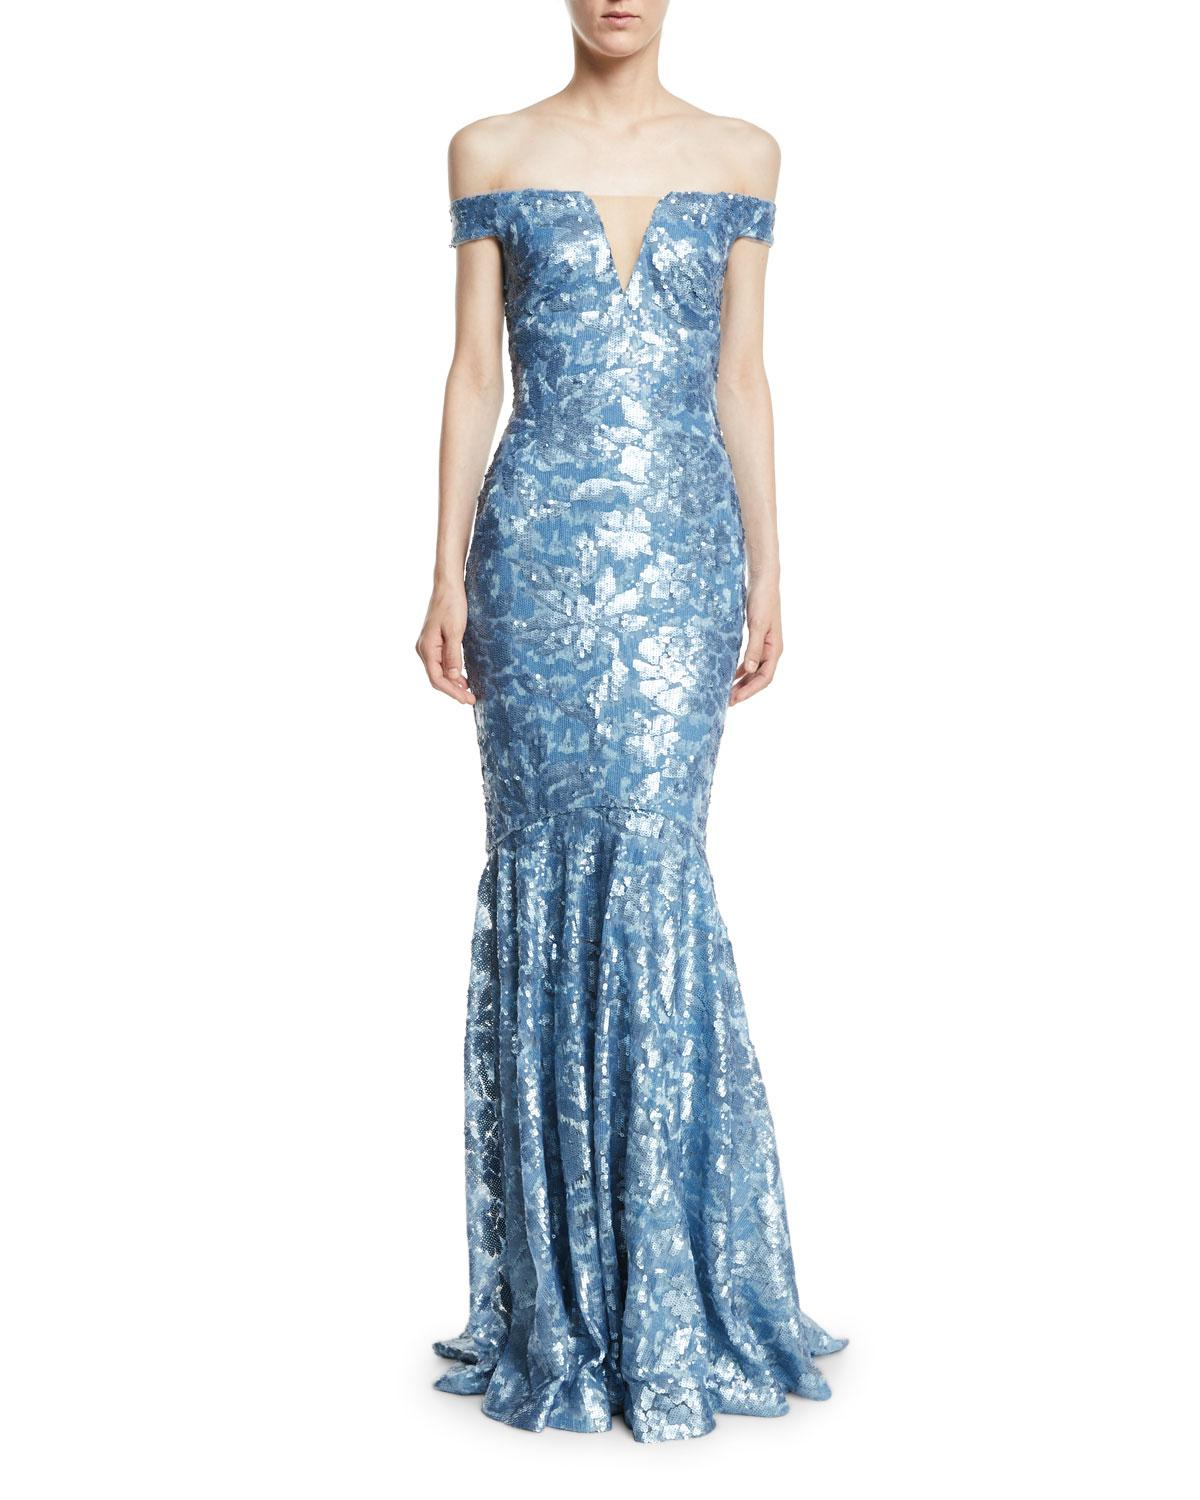 Lyst - Theia Sequin Embellished Off-the-shoulder Gown in Blue